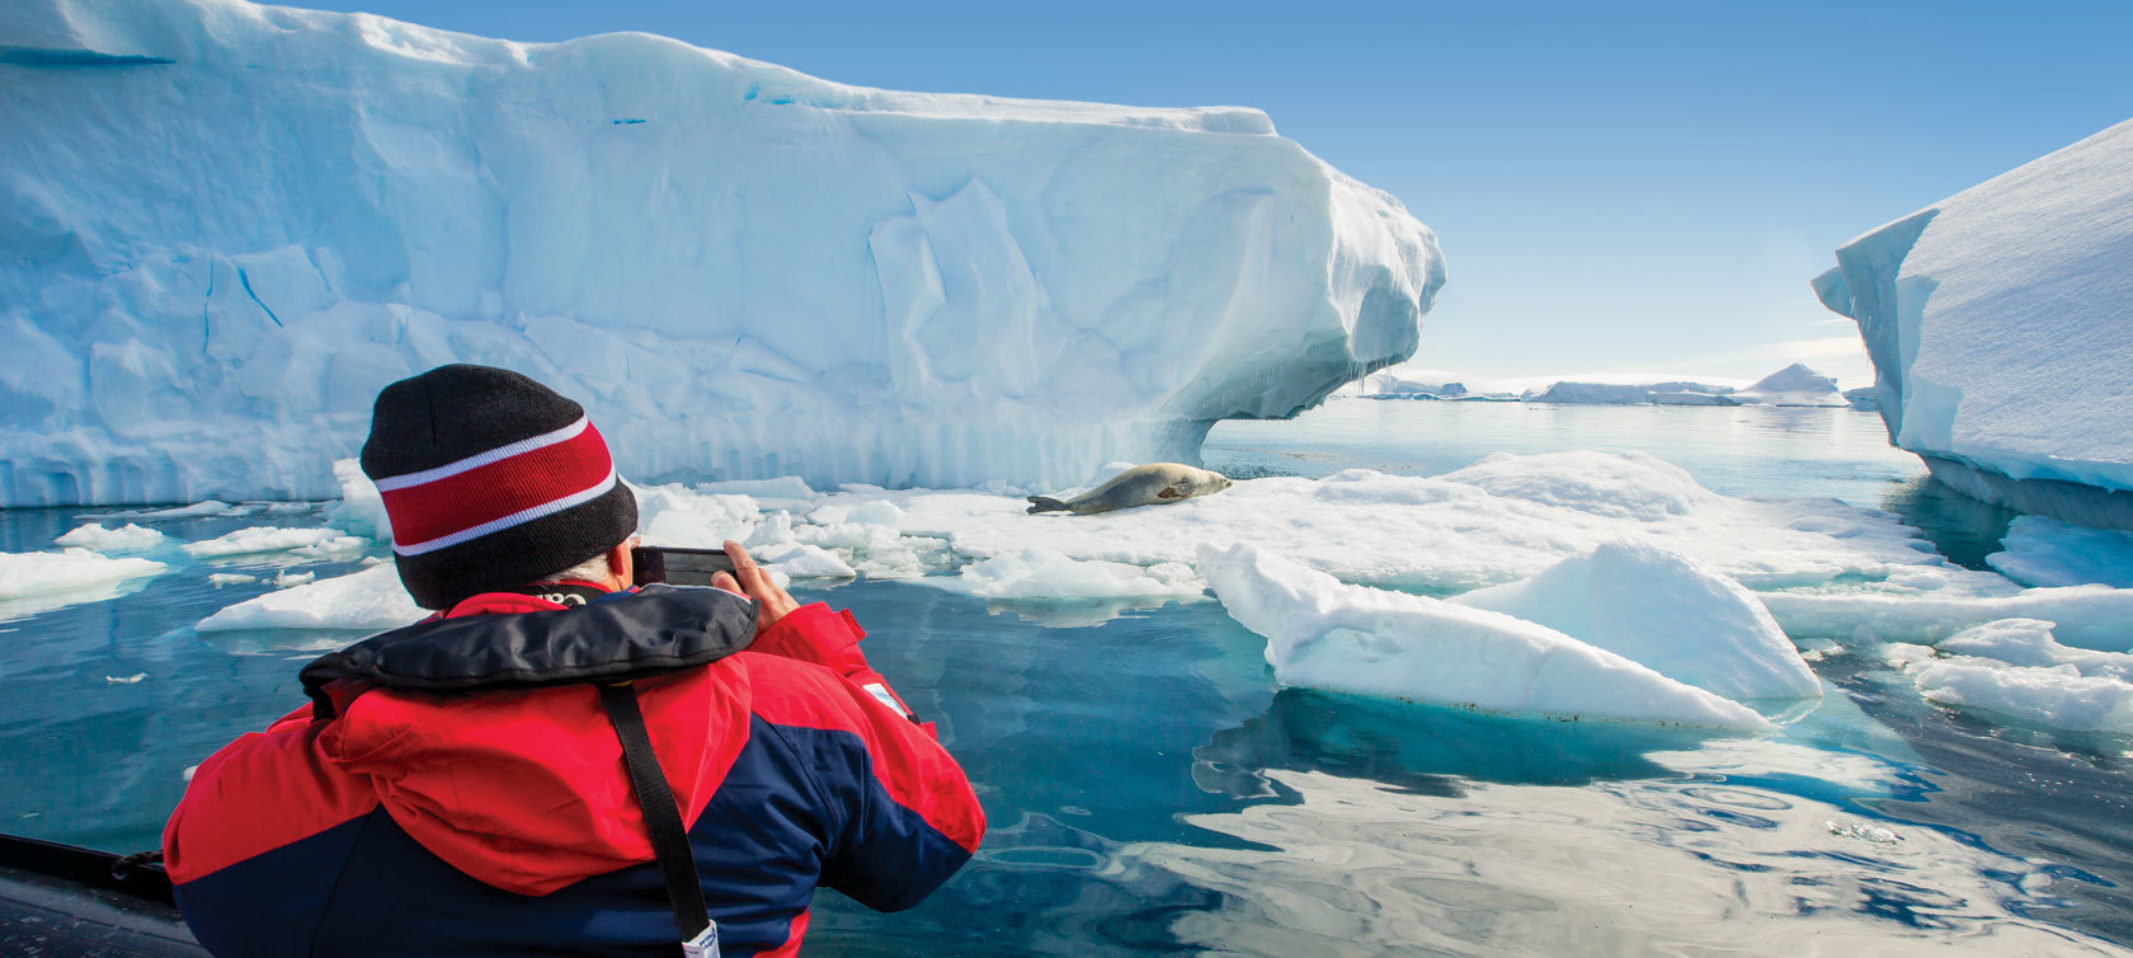 Save up to $16,000 on our Epic Polar Expeditions thumbnail image